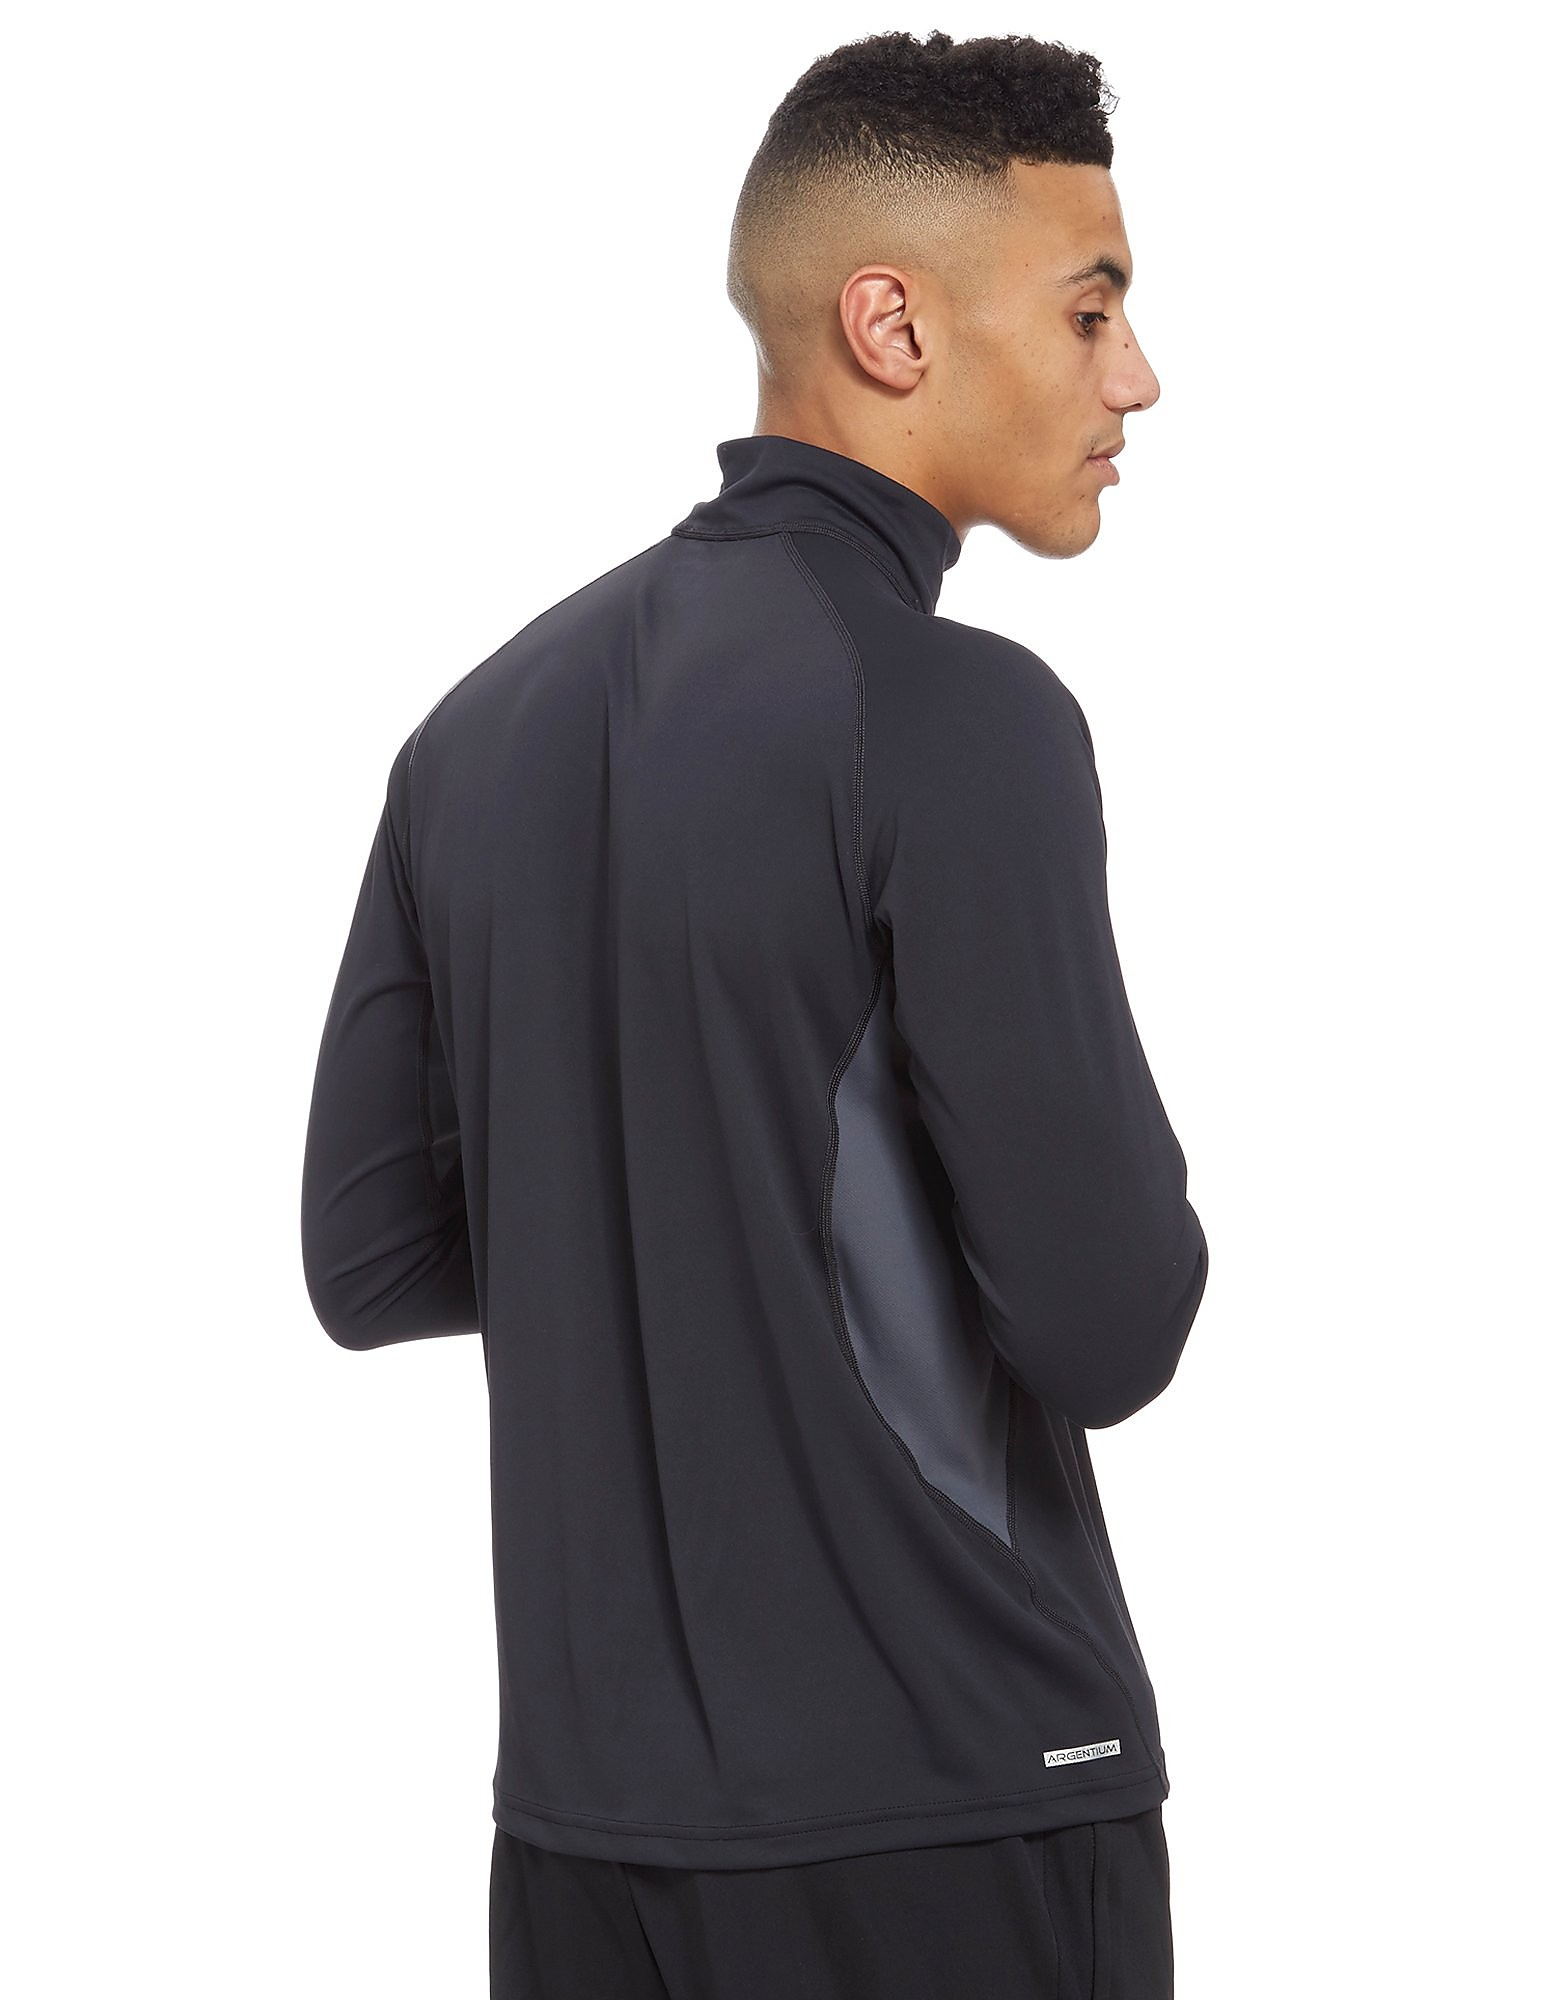 Berghaus Tech Long Sleeve Half Zip Top